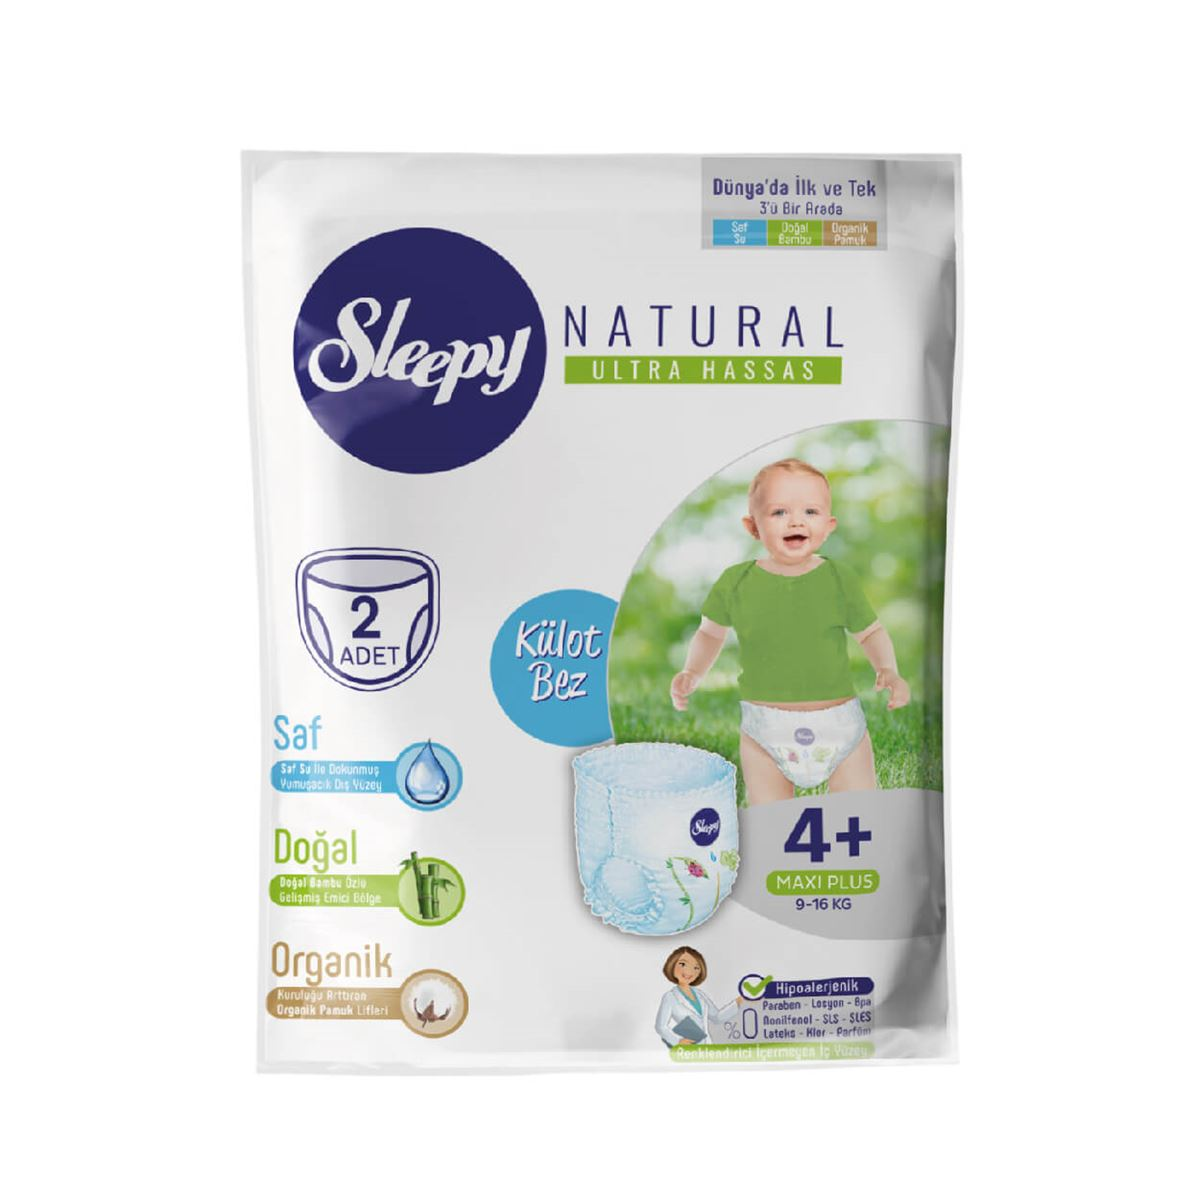 Deneme Paketi Sleepy Natural Külot Bez 4+ Numara Maxi Plus